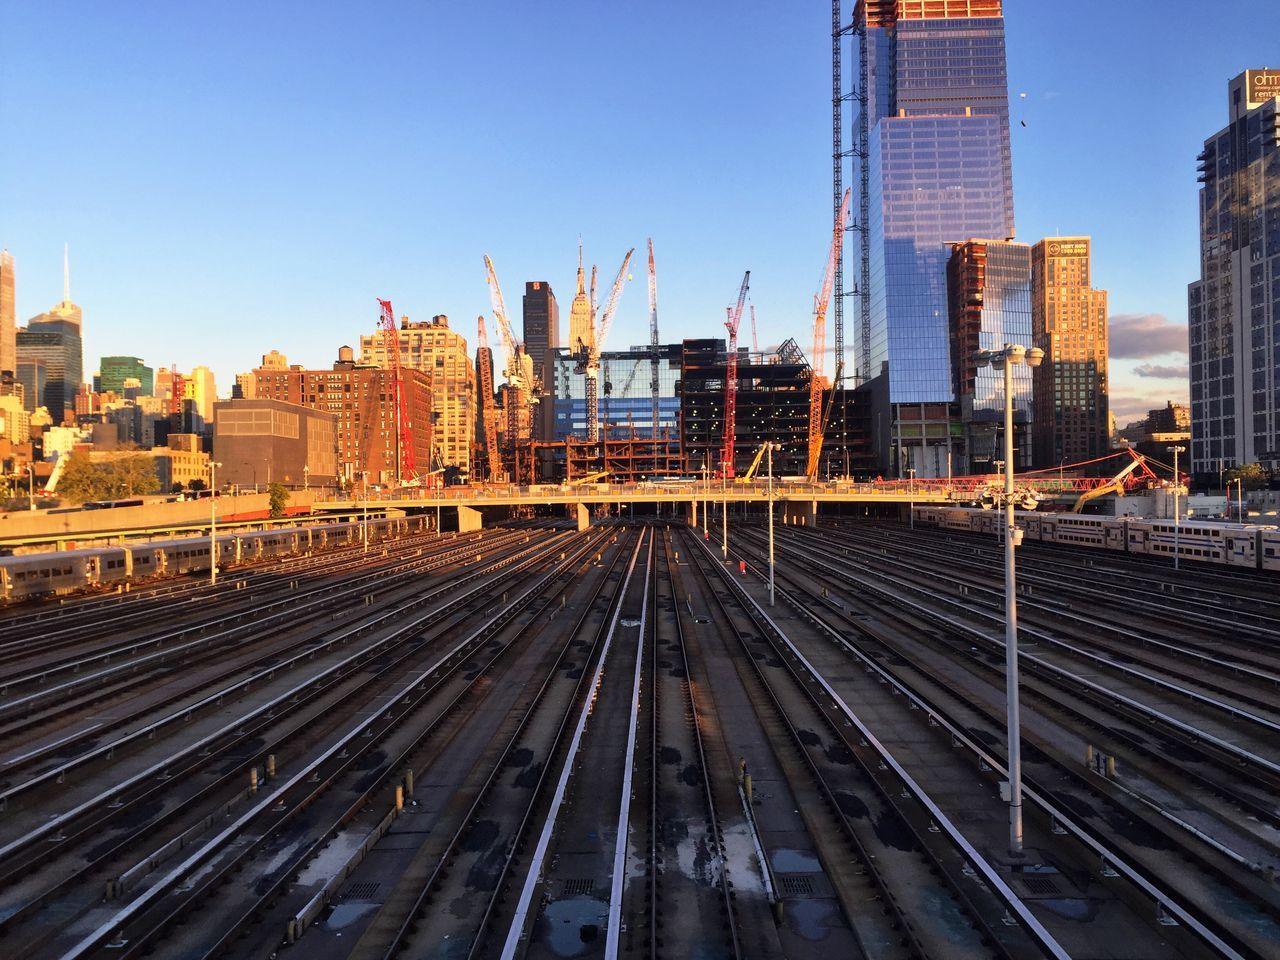 New York Train Traveling Public Transportation Train Tracks Railway Railwaystation Train Yard Skyline United States Leading Lines